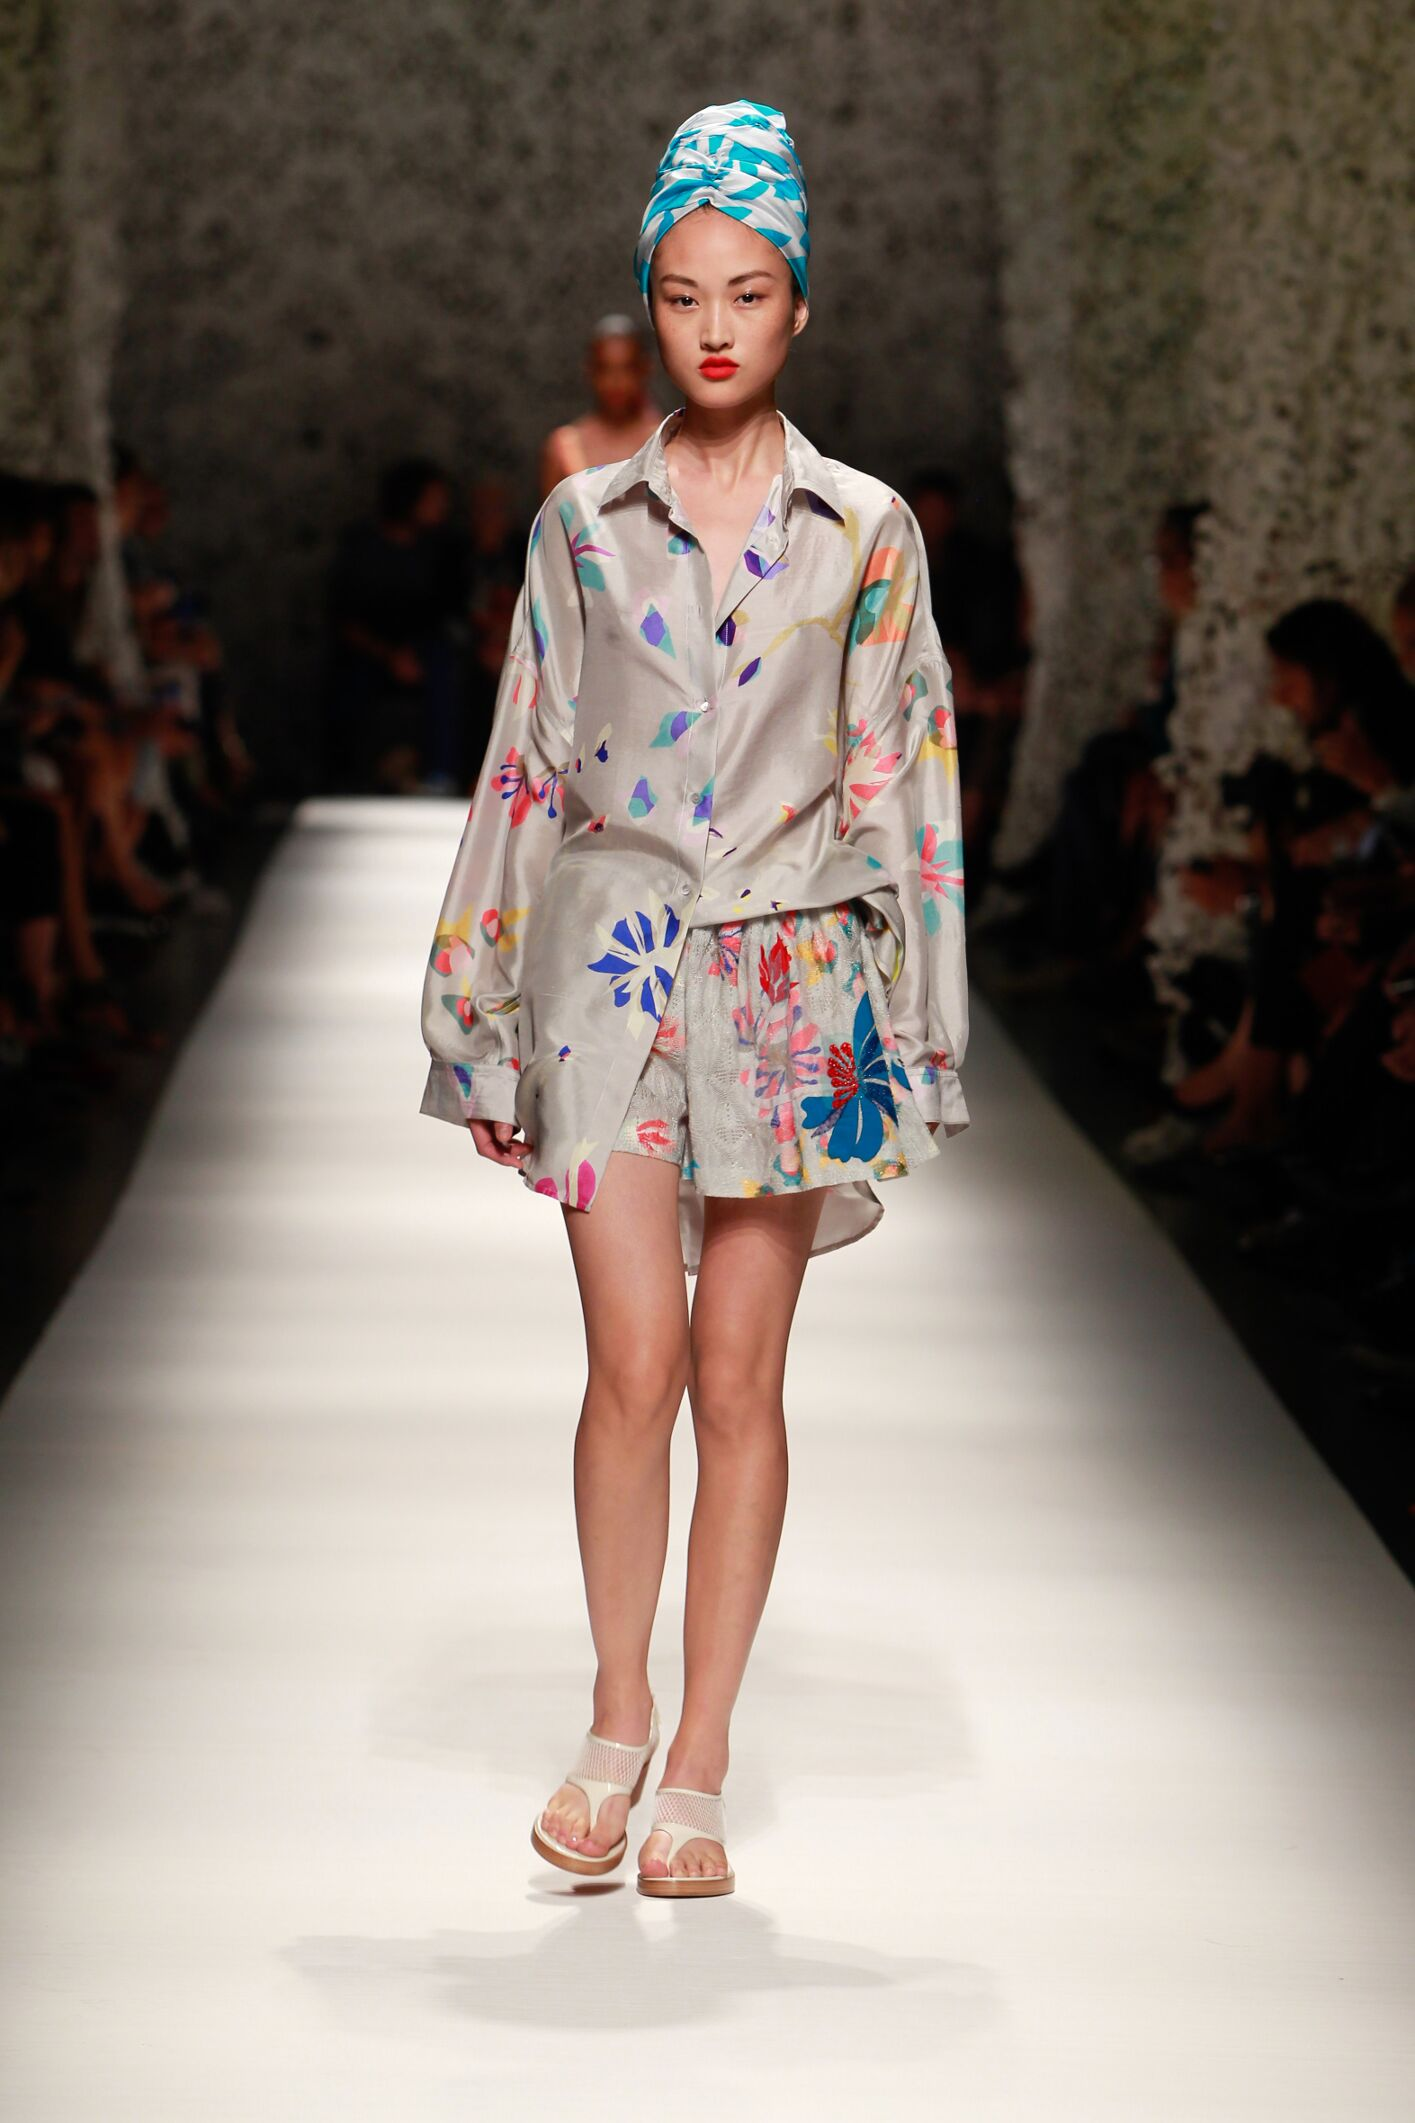 Catwalk Missoni Woman Fashion Show Summer 2015